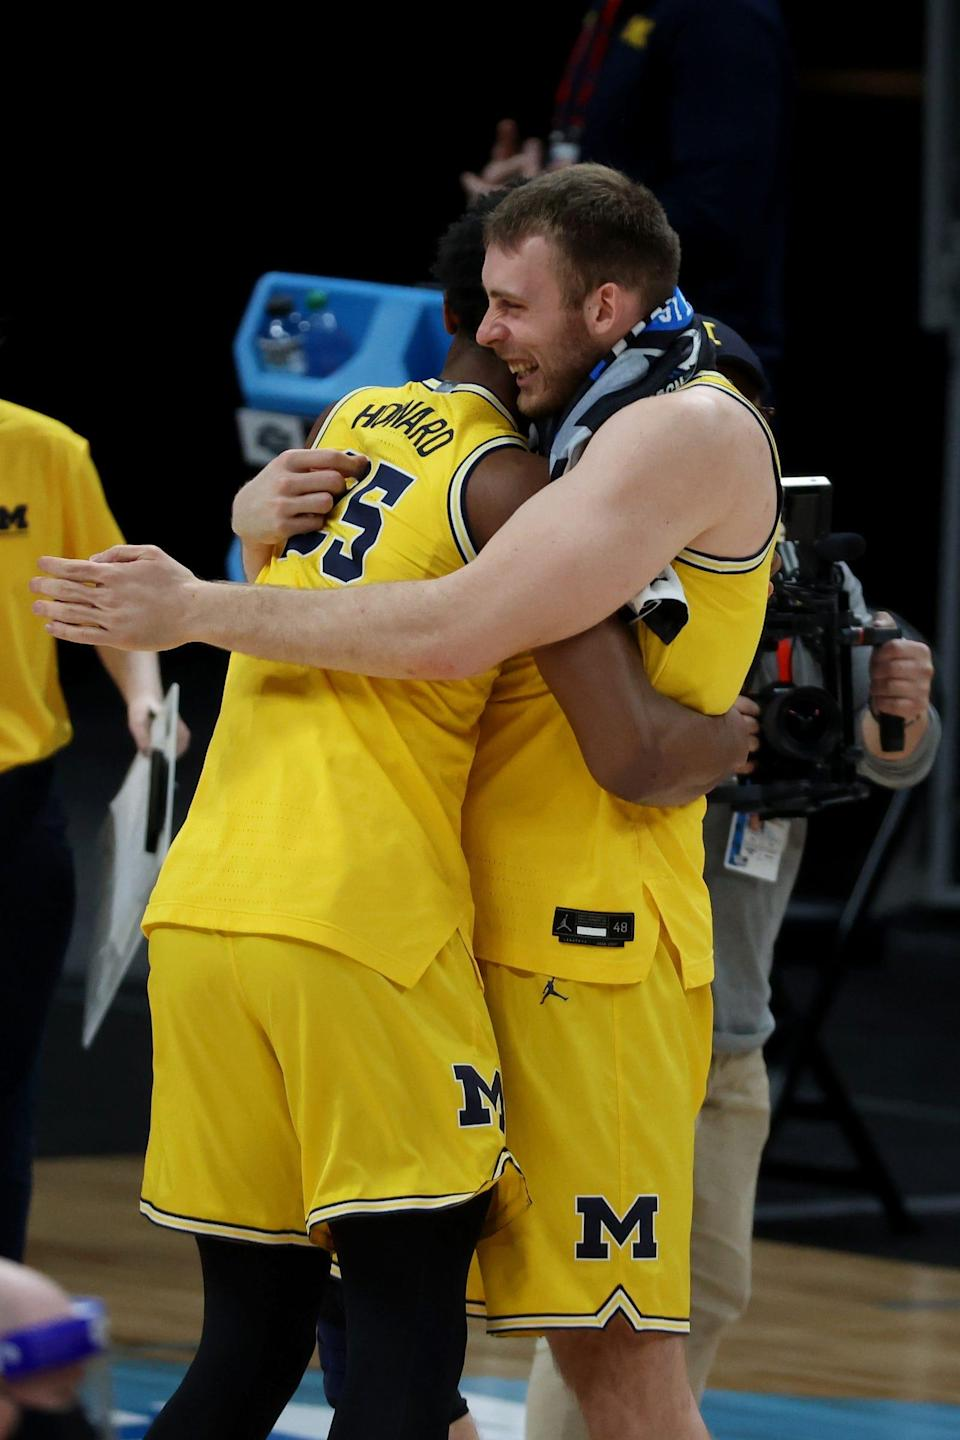 Michigan guard Jace Howard and forward Austin Davis celebrate after the 76-58 win over Florida State during the Sweet 16 game on Sunday, March 28, 2021, in Indianapolis.,